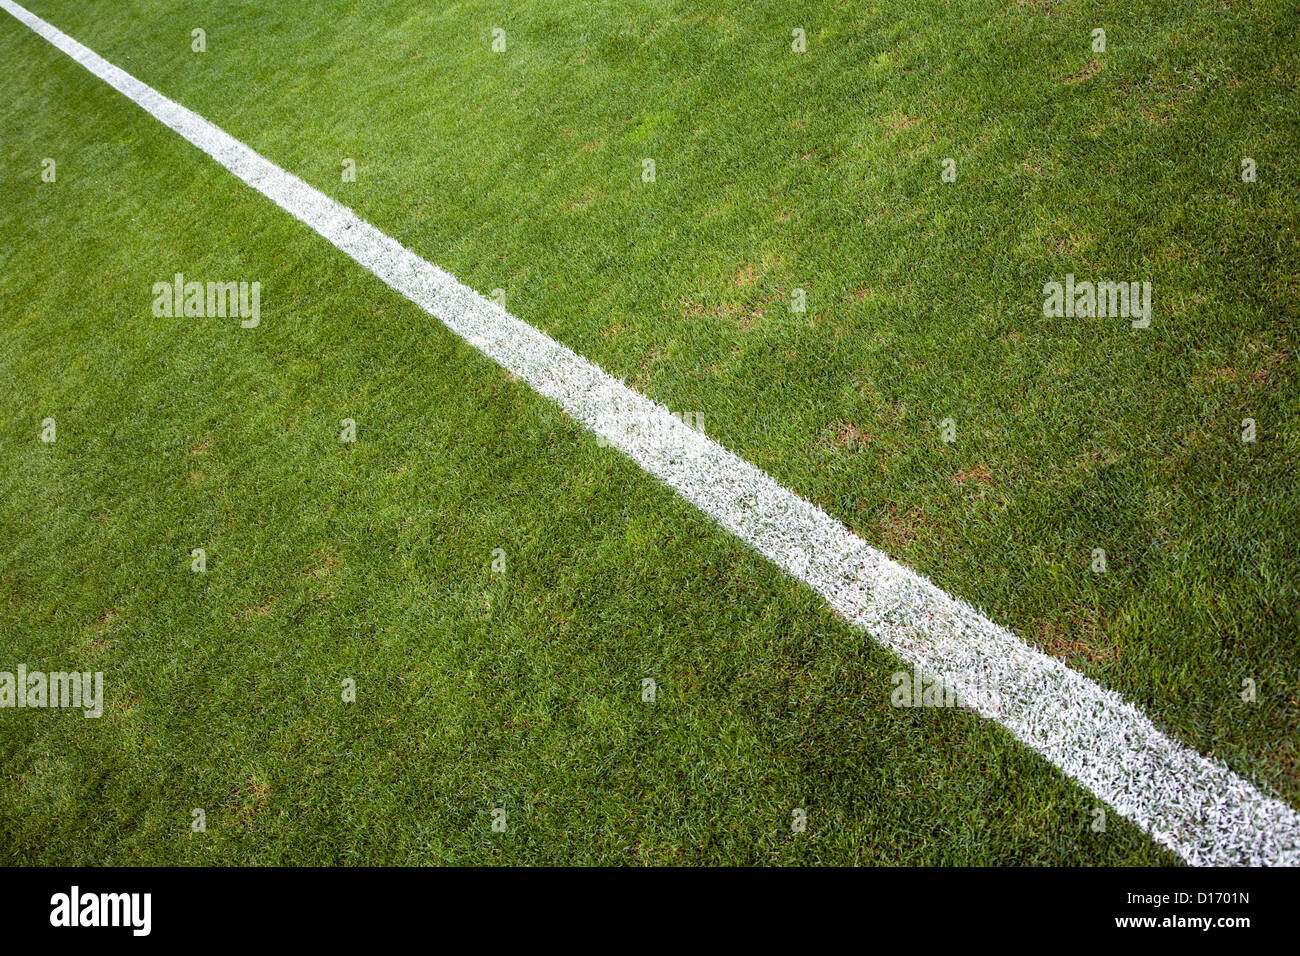 Seville, Spain, lateral line diagonally - Stock Image